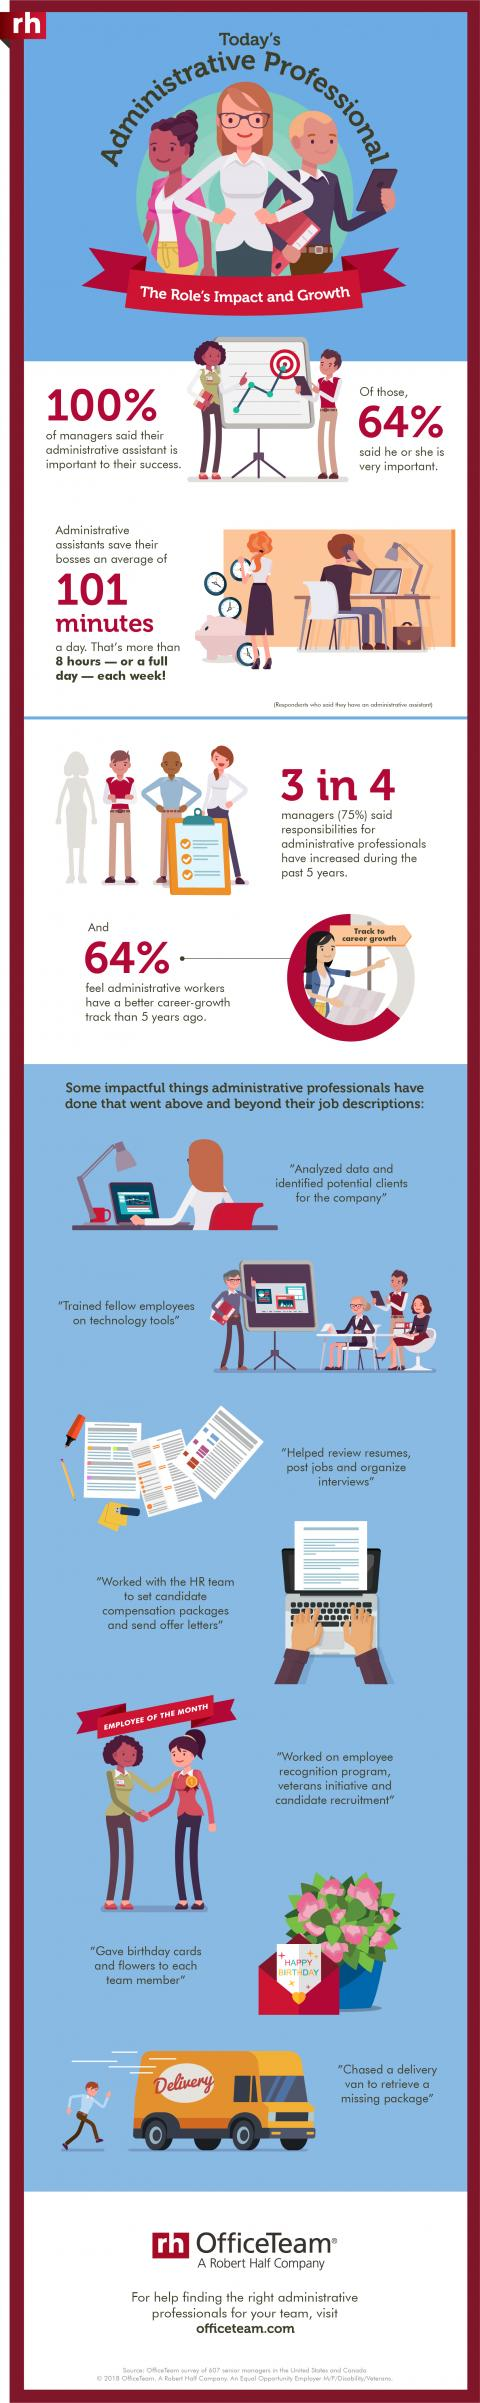 An infographic showing the results of an OfficeTeam survey about administrative professionals